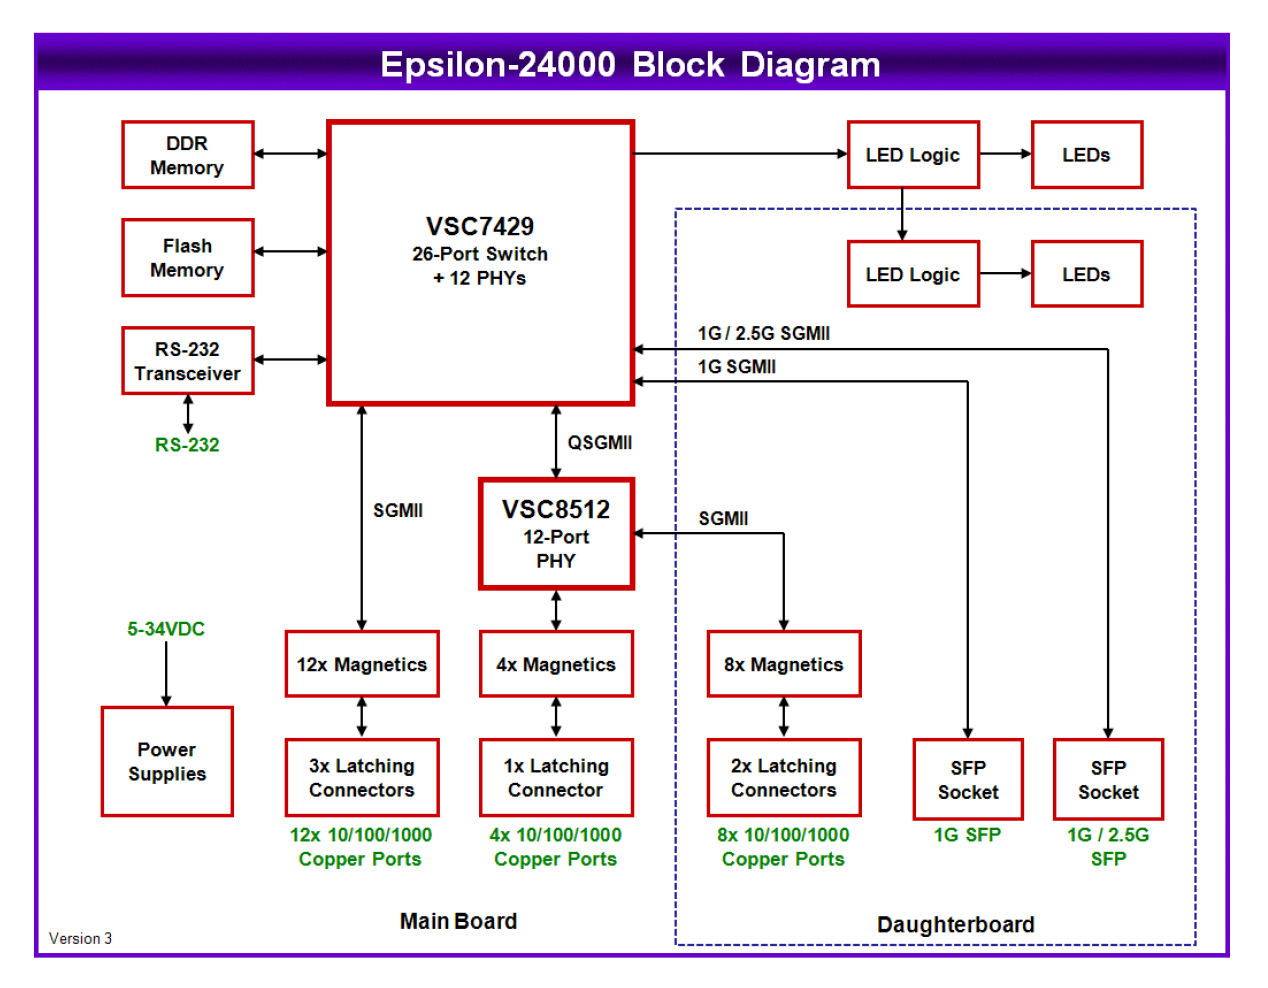 Epsilon-24000-Block Diagram